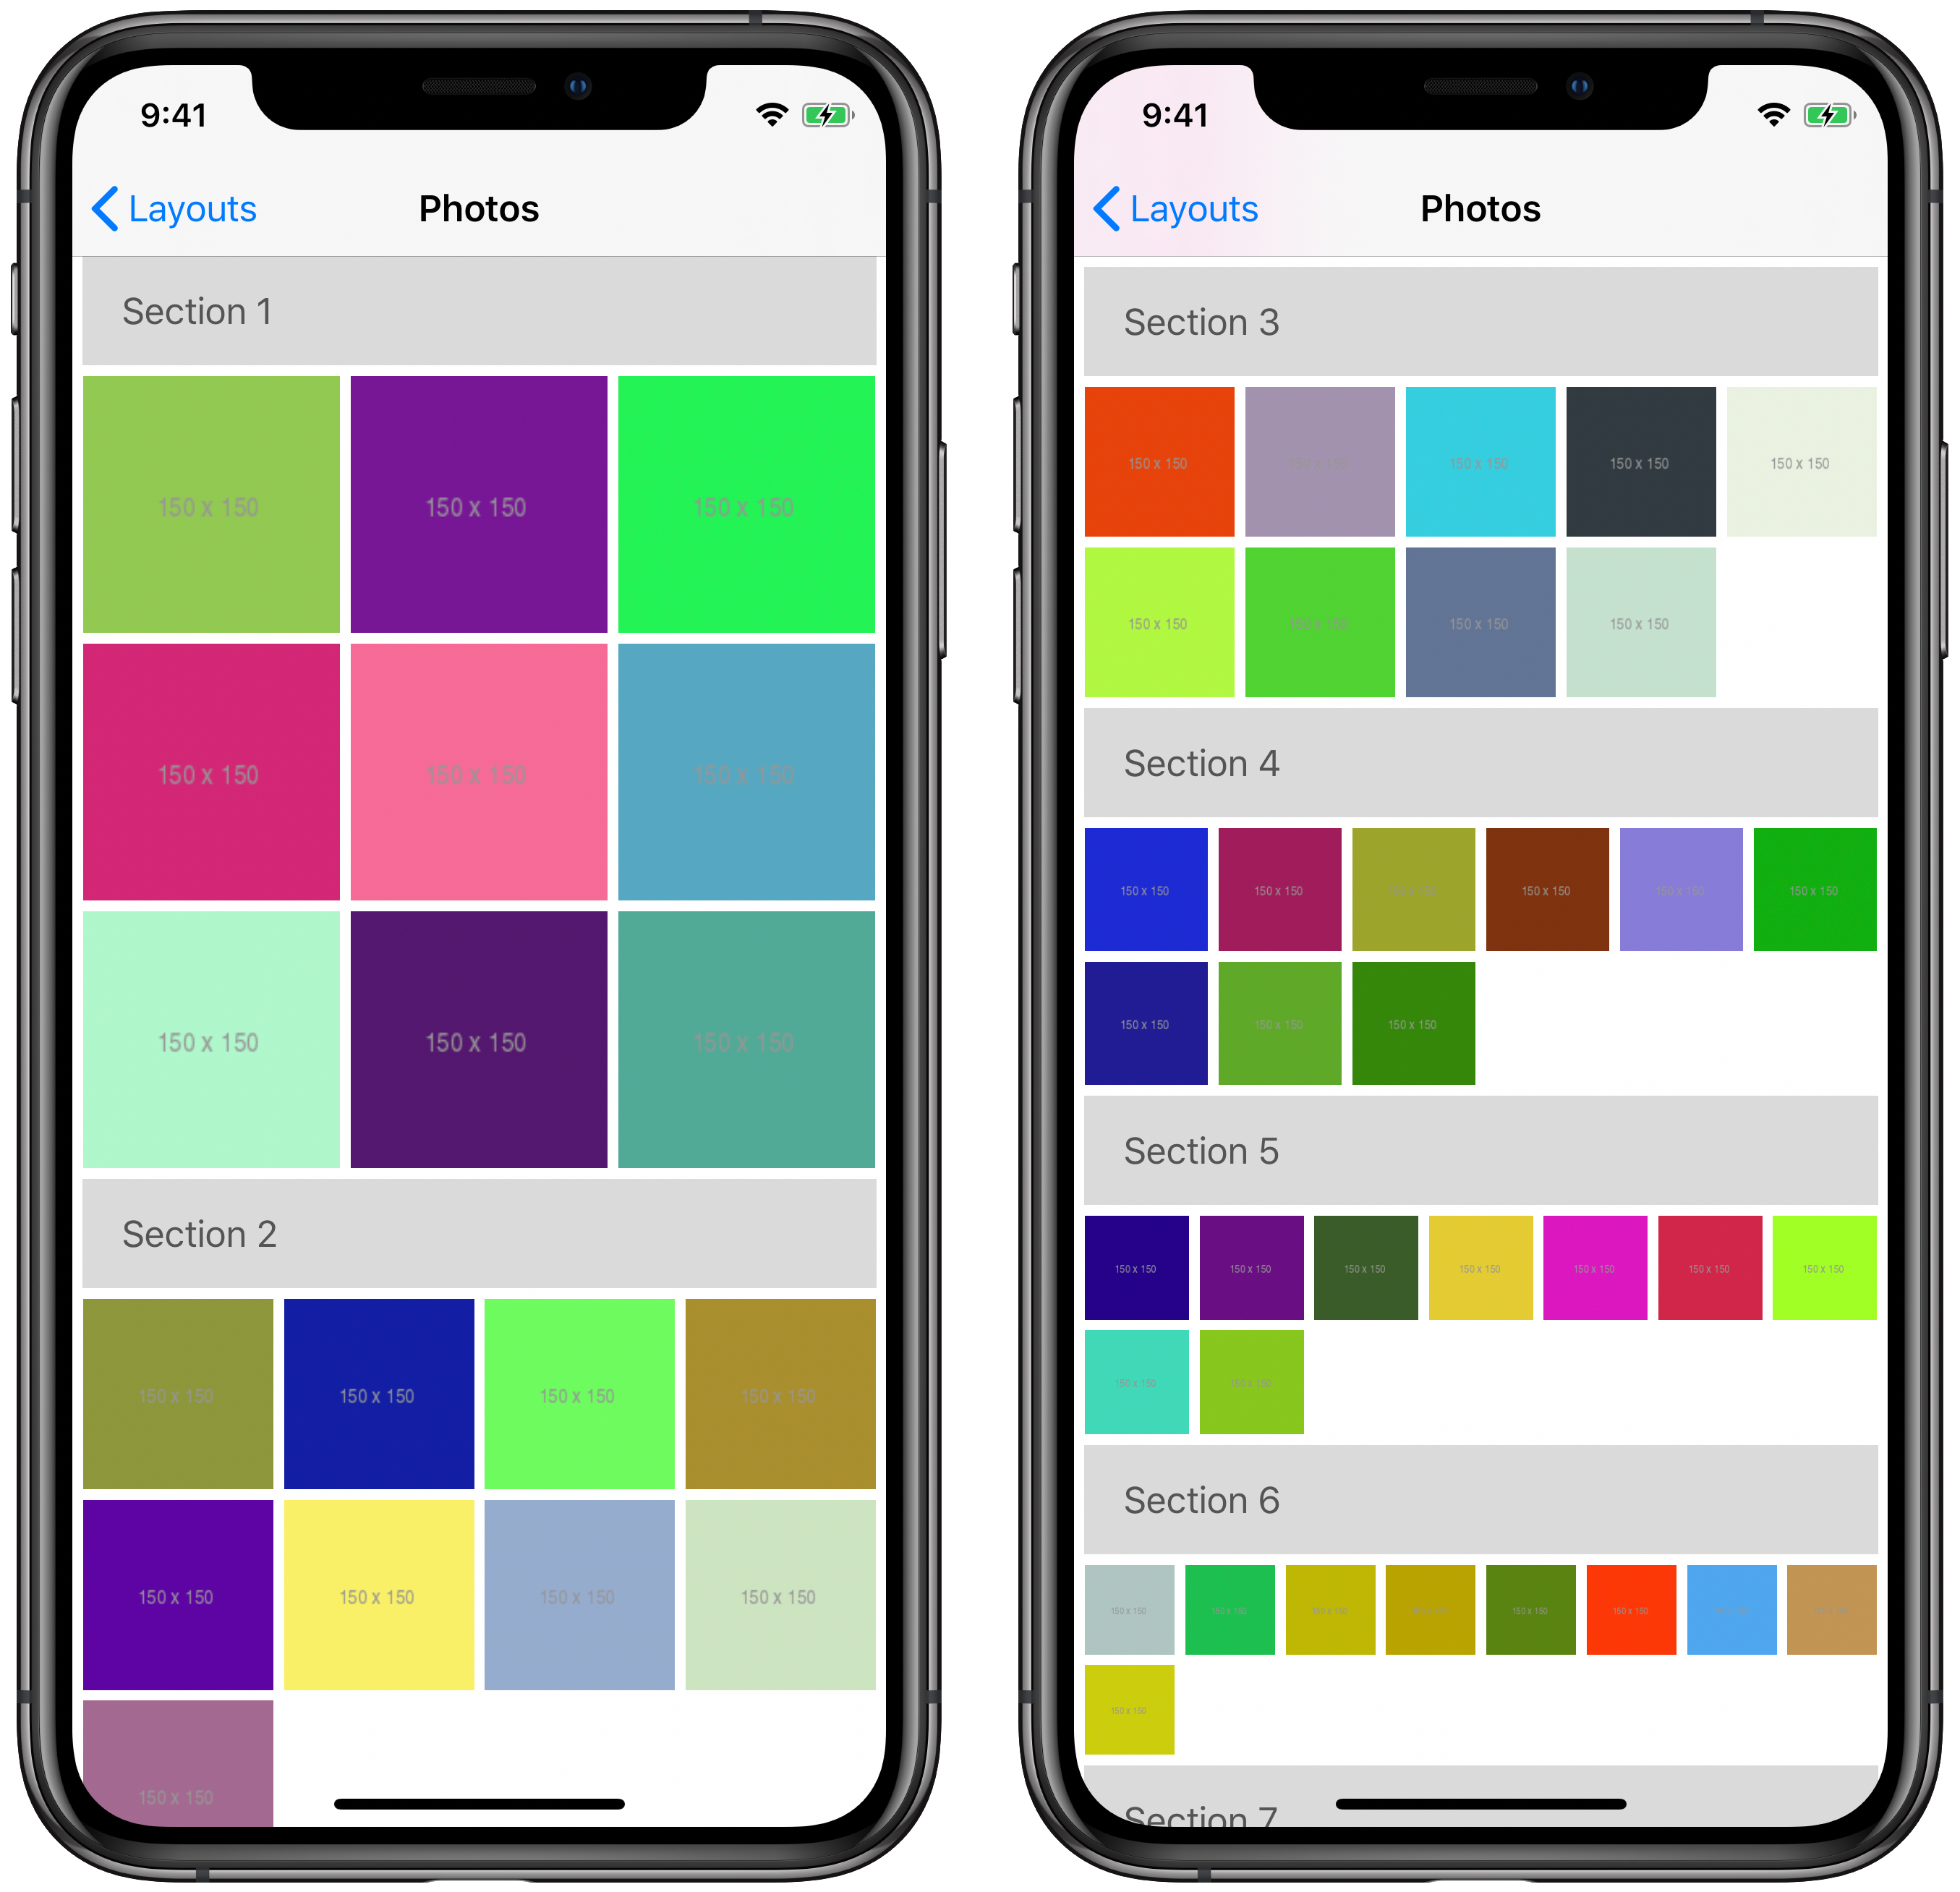 Two iPhone simulators side by side showing compositional layout with an increasing number of items per row in each section